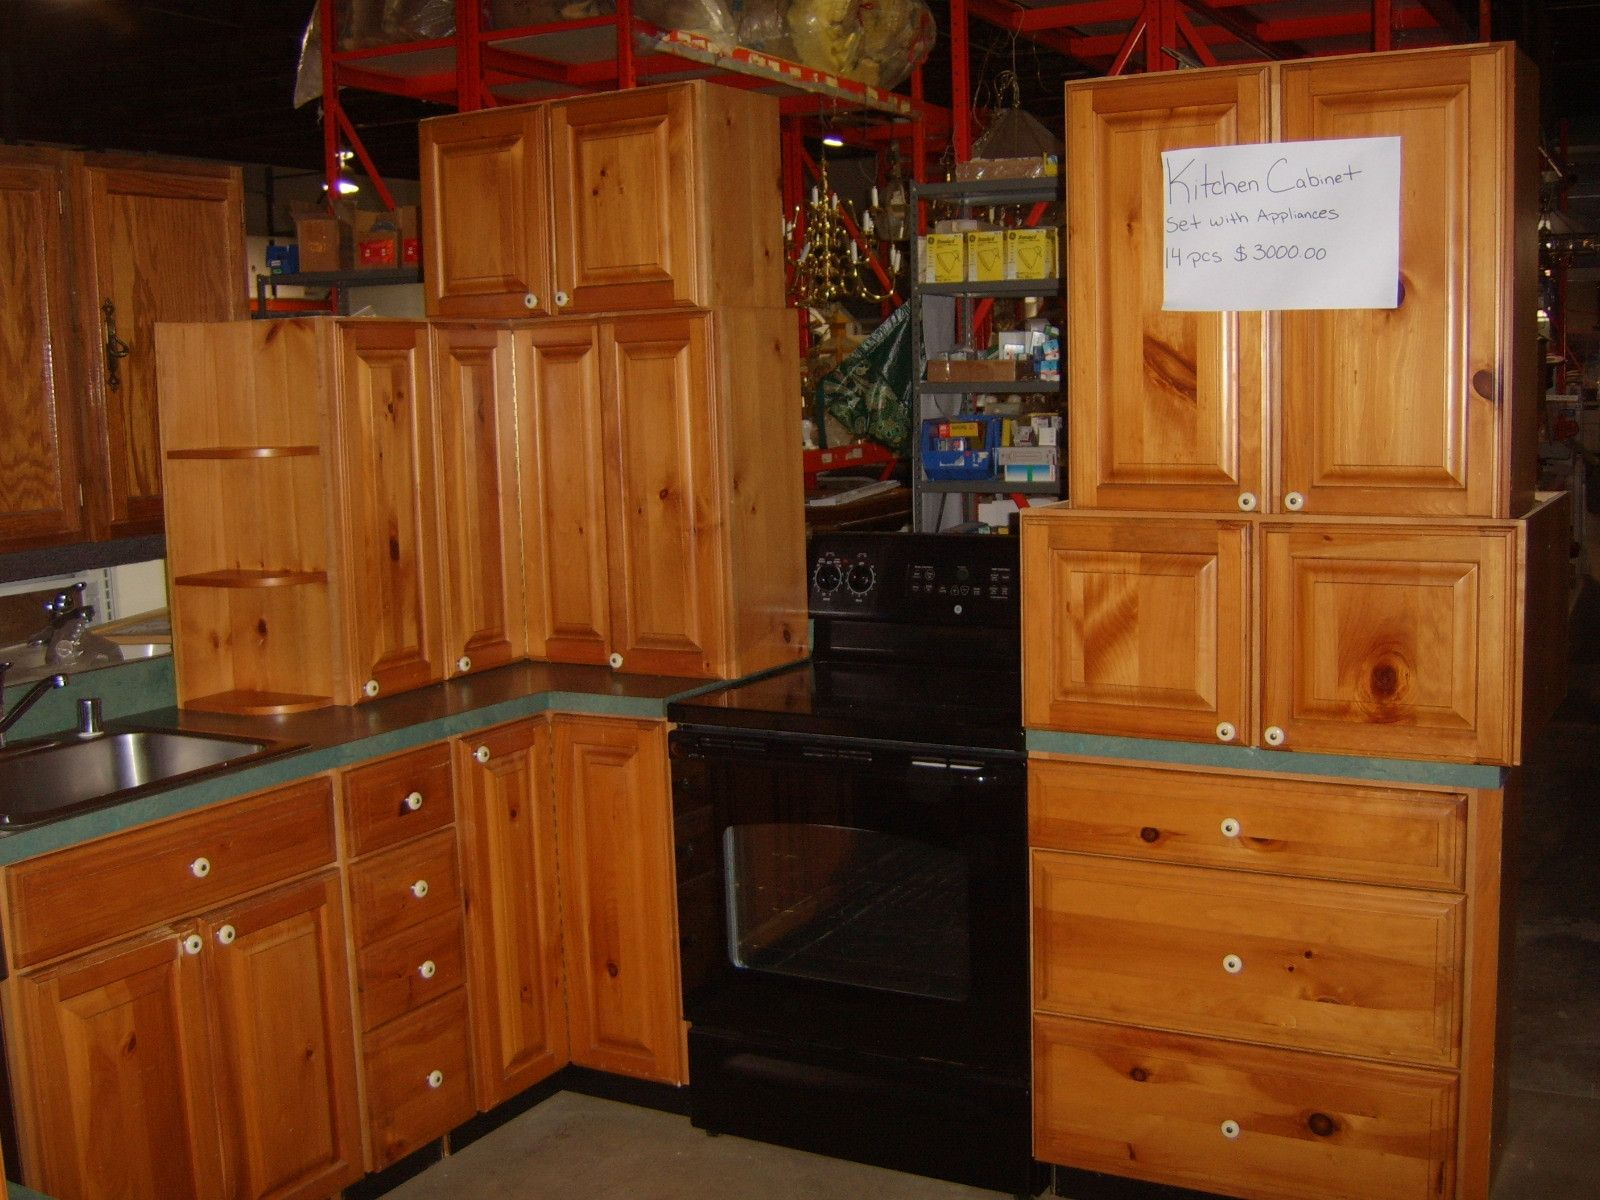 Sale Kitchen Cabinets Pin By Rahayu12 On Interior Analogi Used Kitchen Cabinets